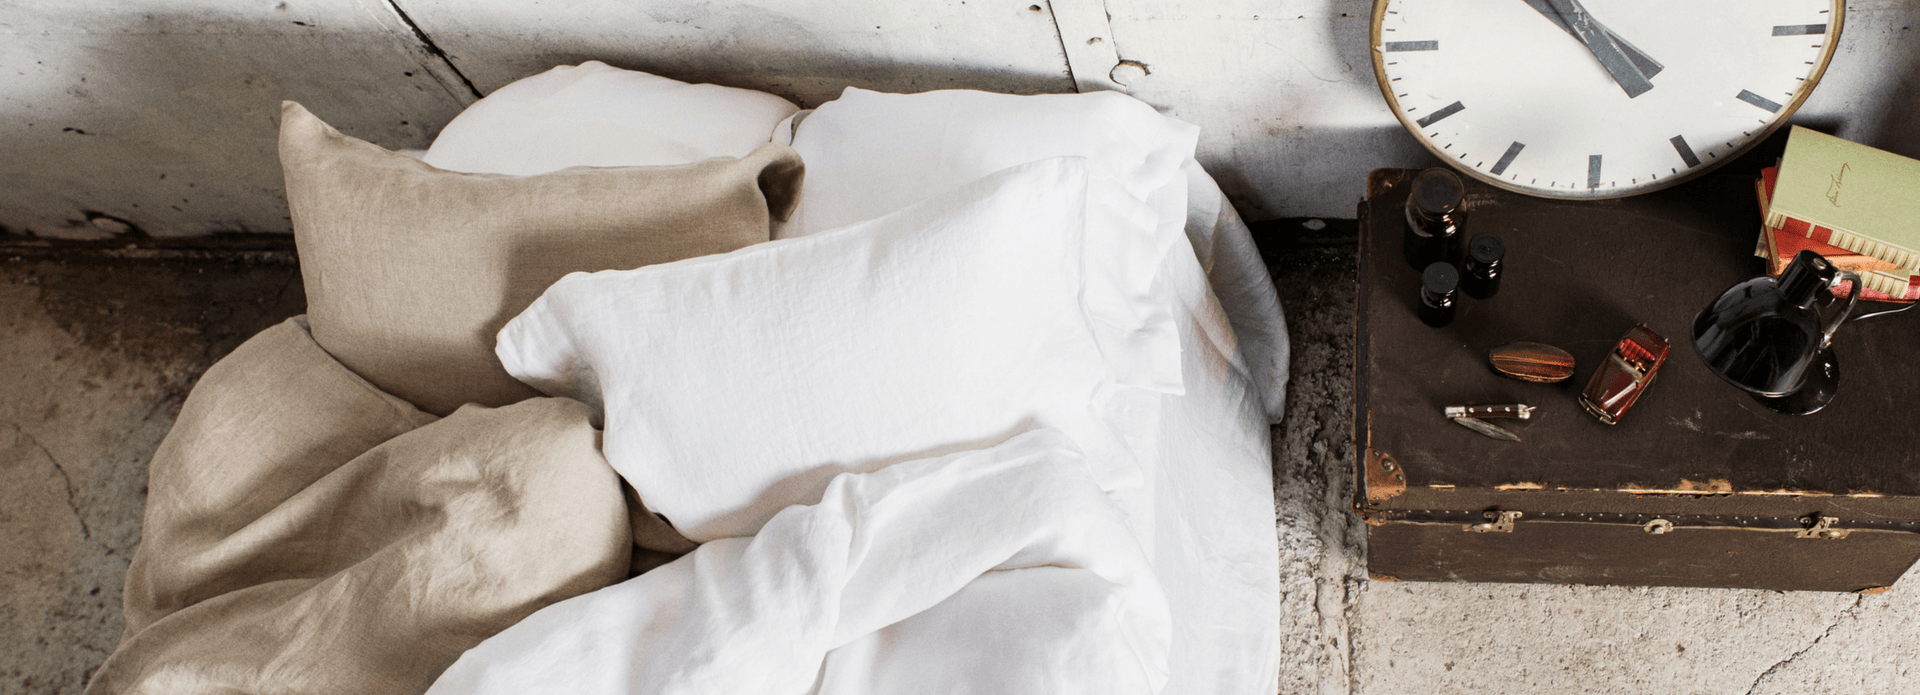 The Jesus Range: Scandinavian Bed Linen with a 50 Year Warranty